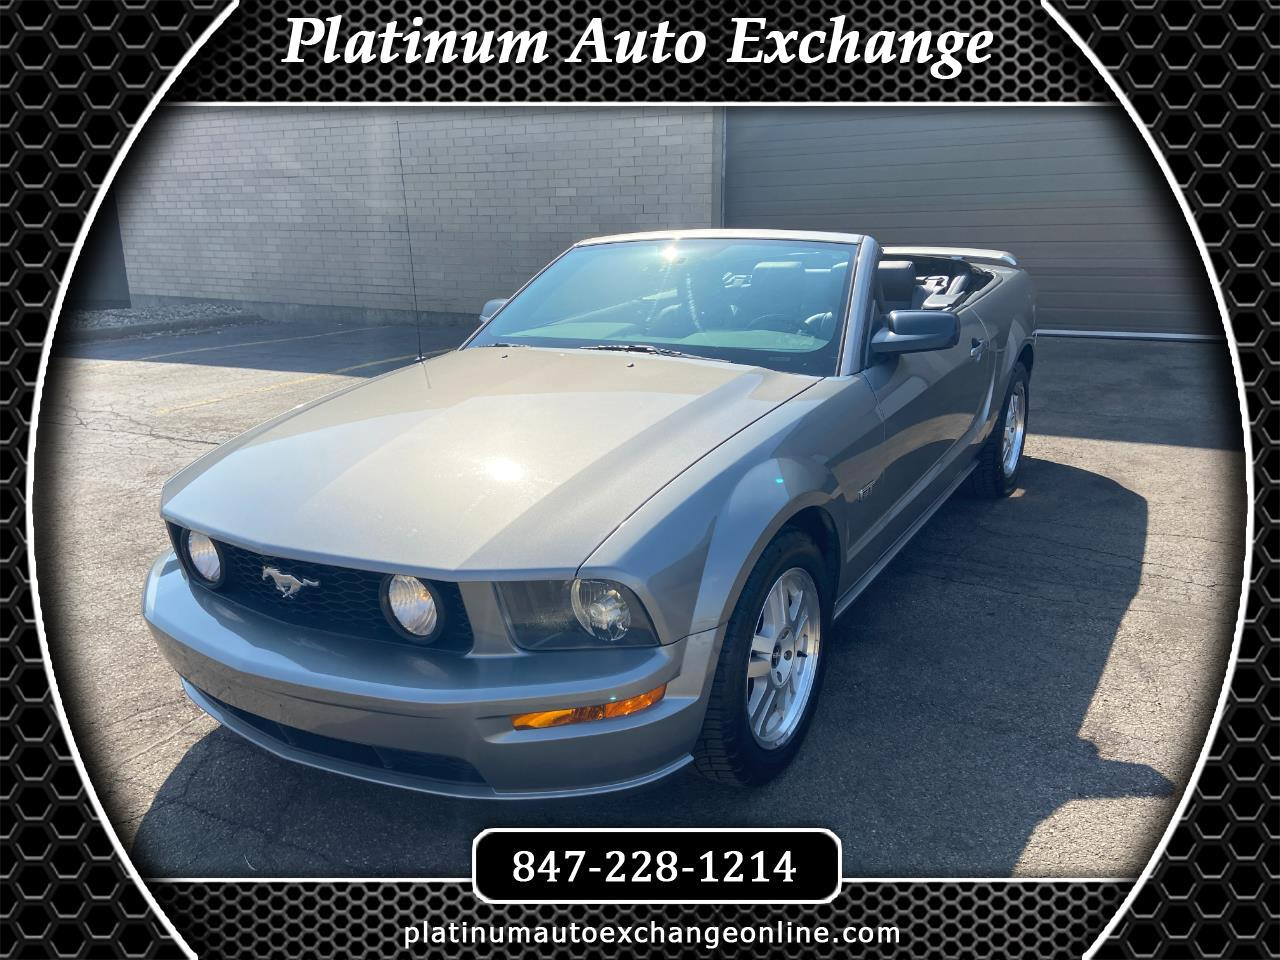 Ford Mustang 2dr Convertible GT Premium 2008